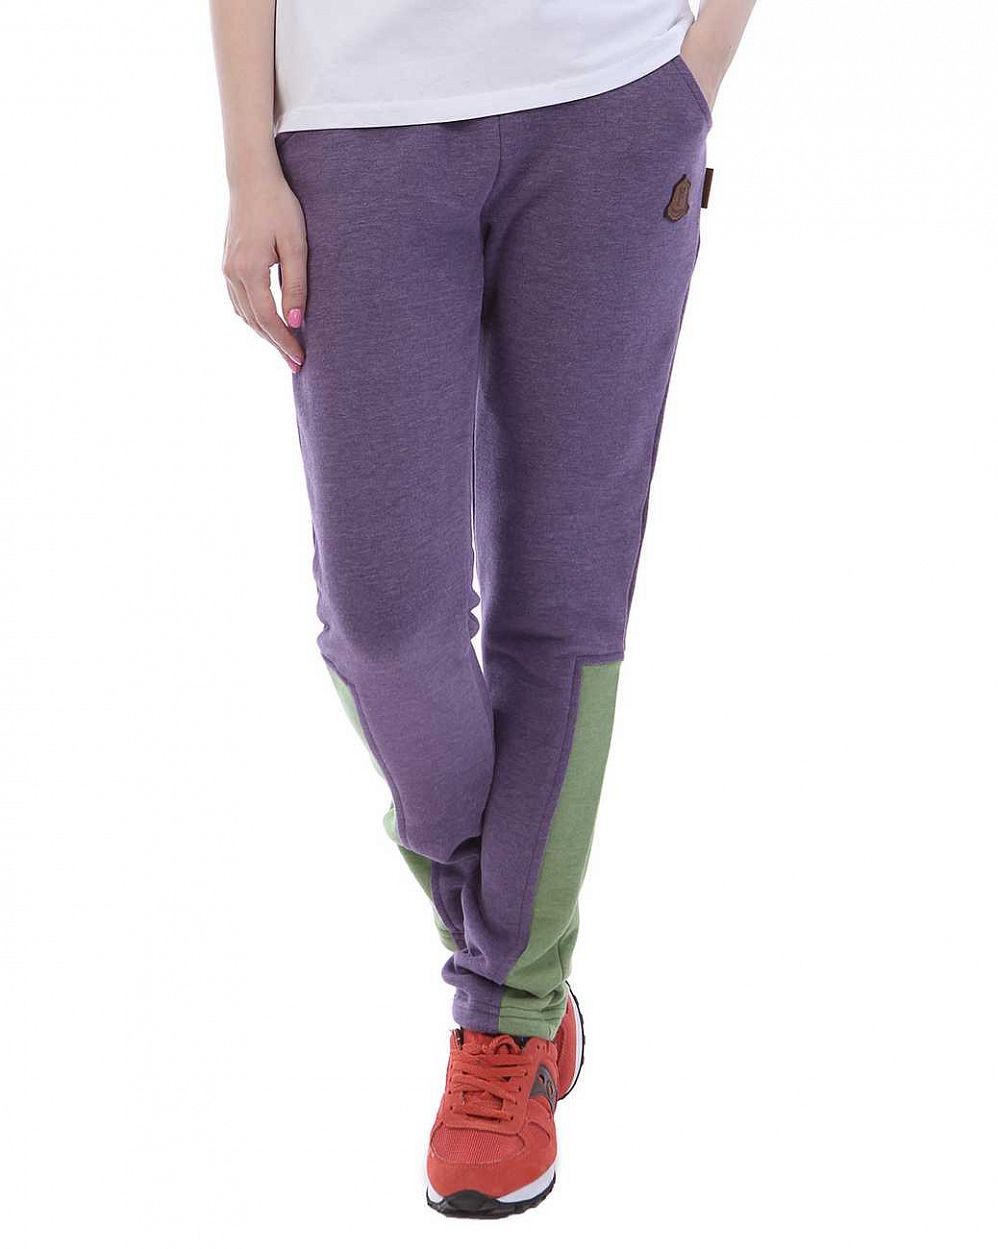 Джоггеры женские Naketano Two Ton Pocket Double Ton Purple Lime отзывы